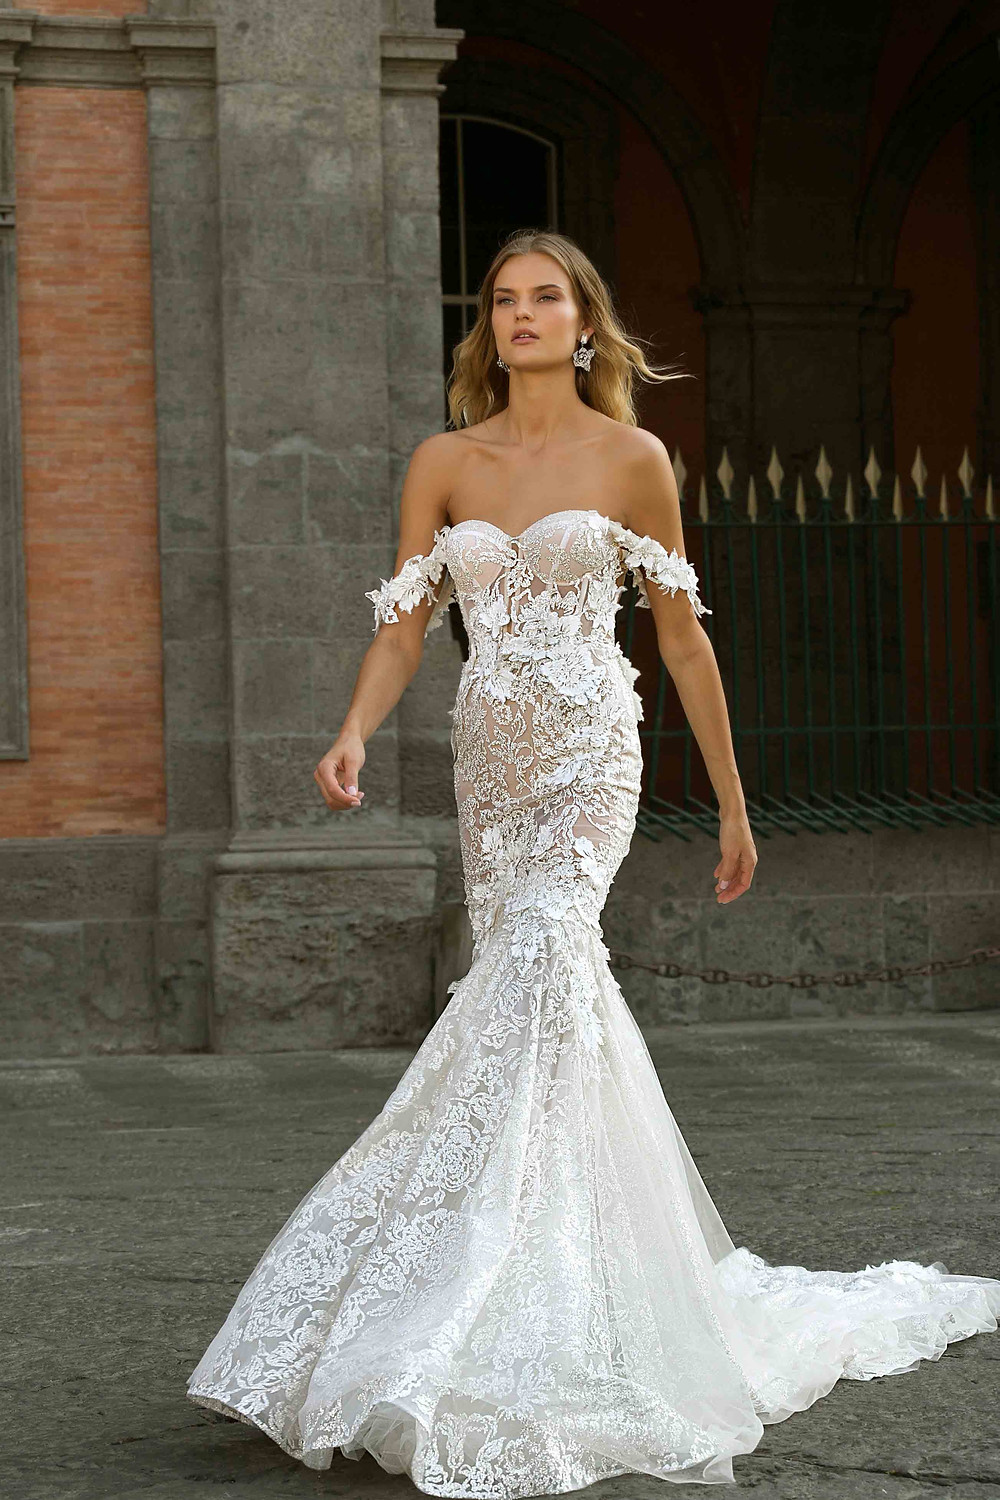 An off the shoulder, corset mermaid wedding dress, with lace and flowers